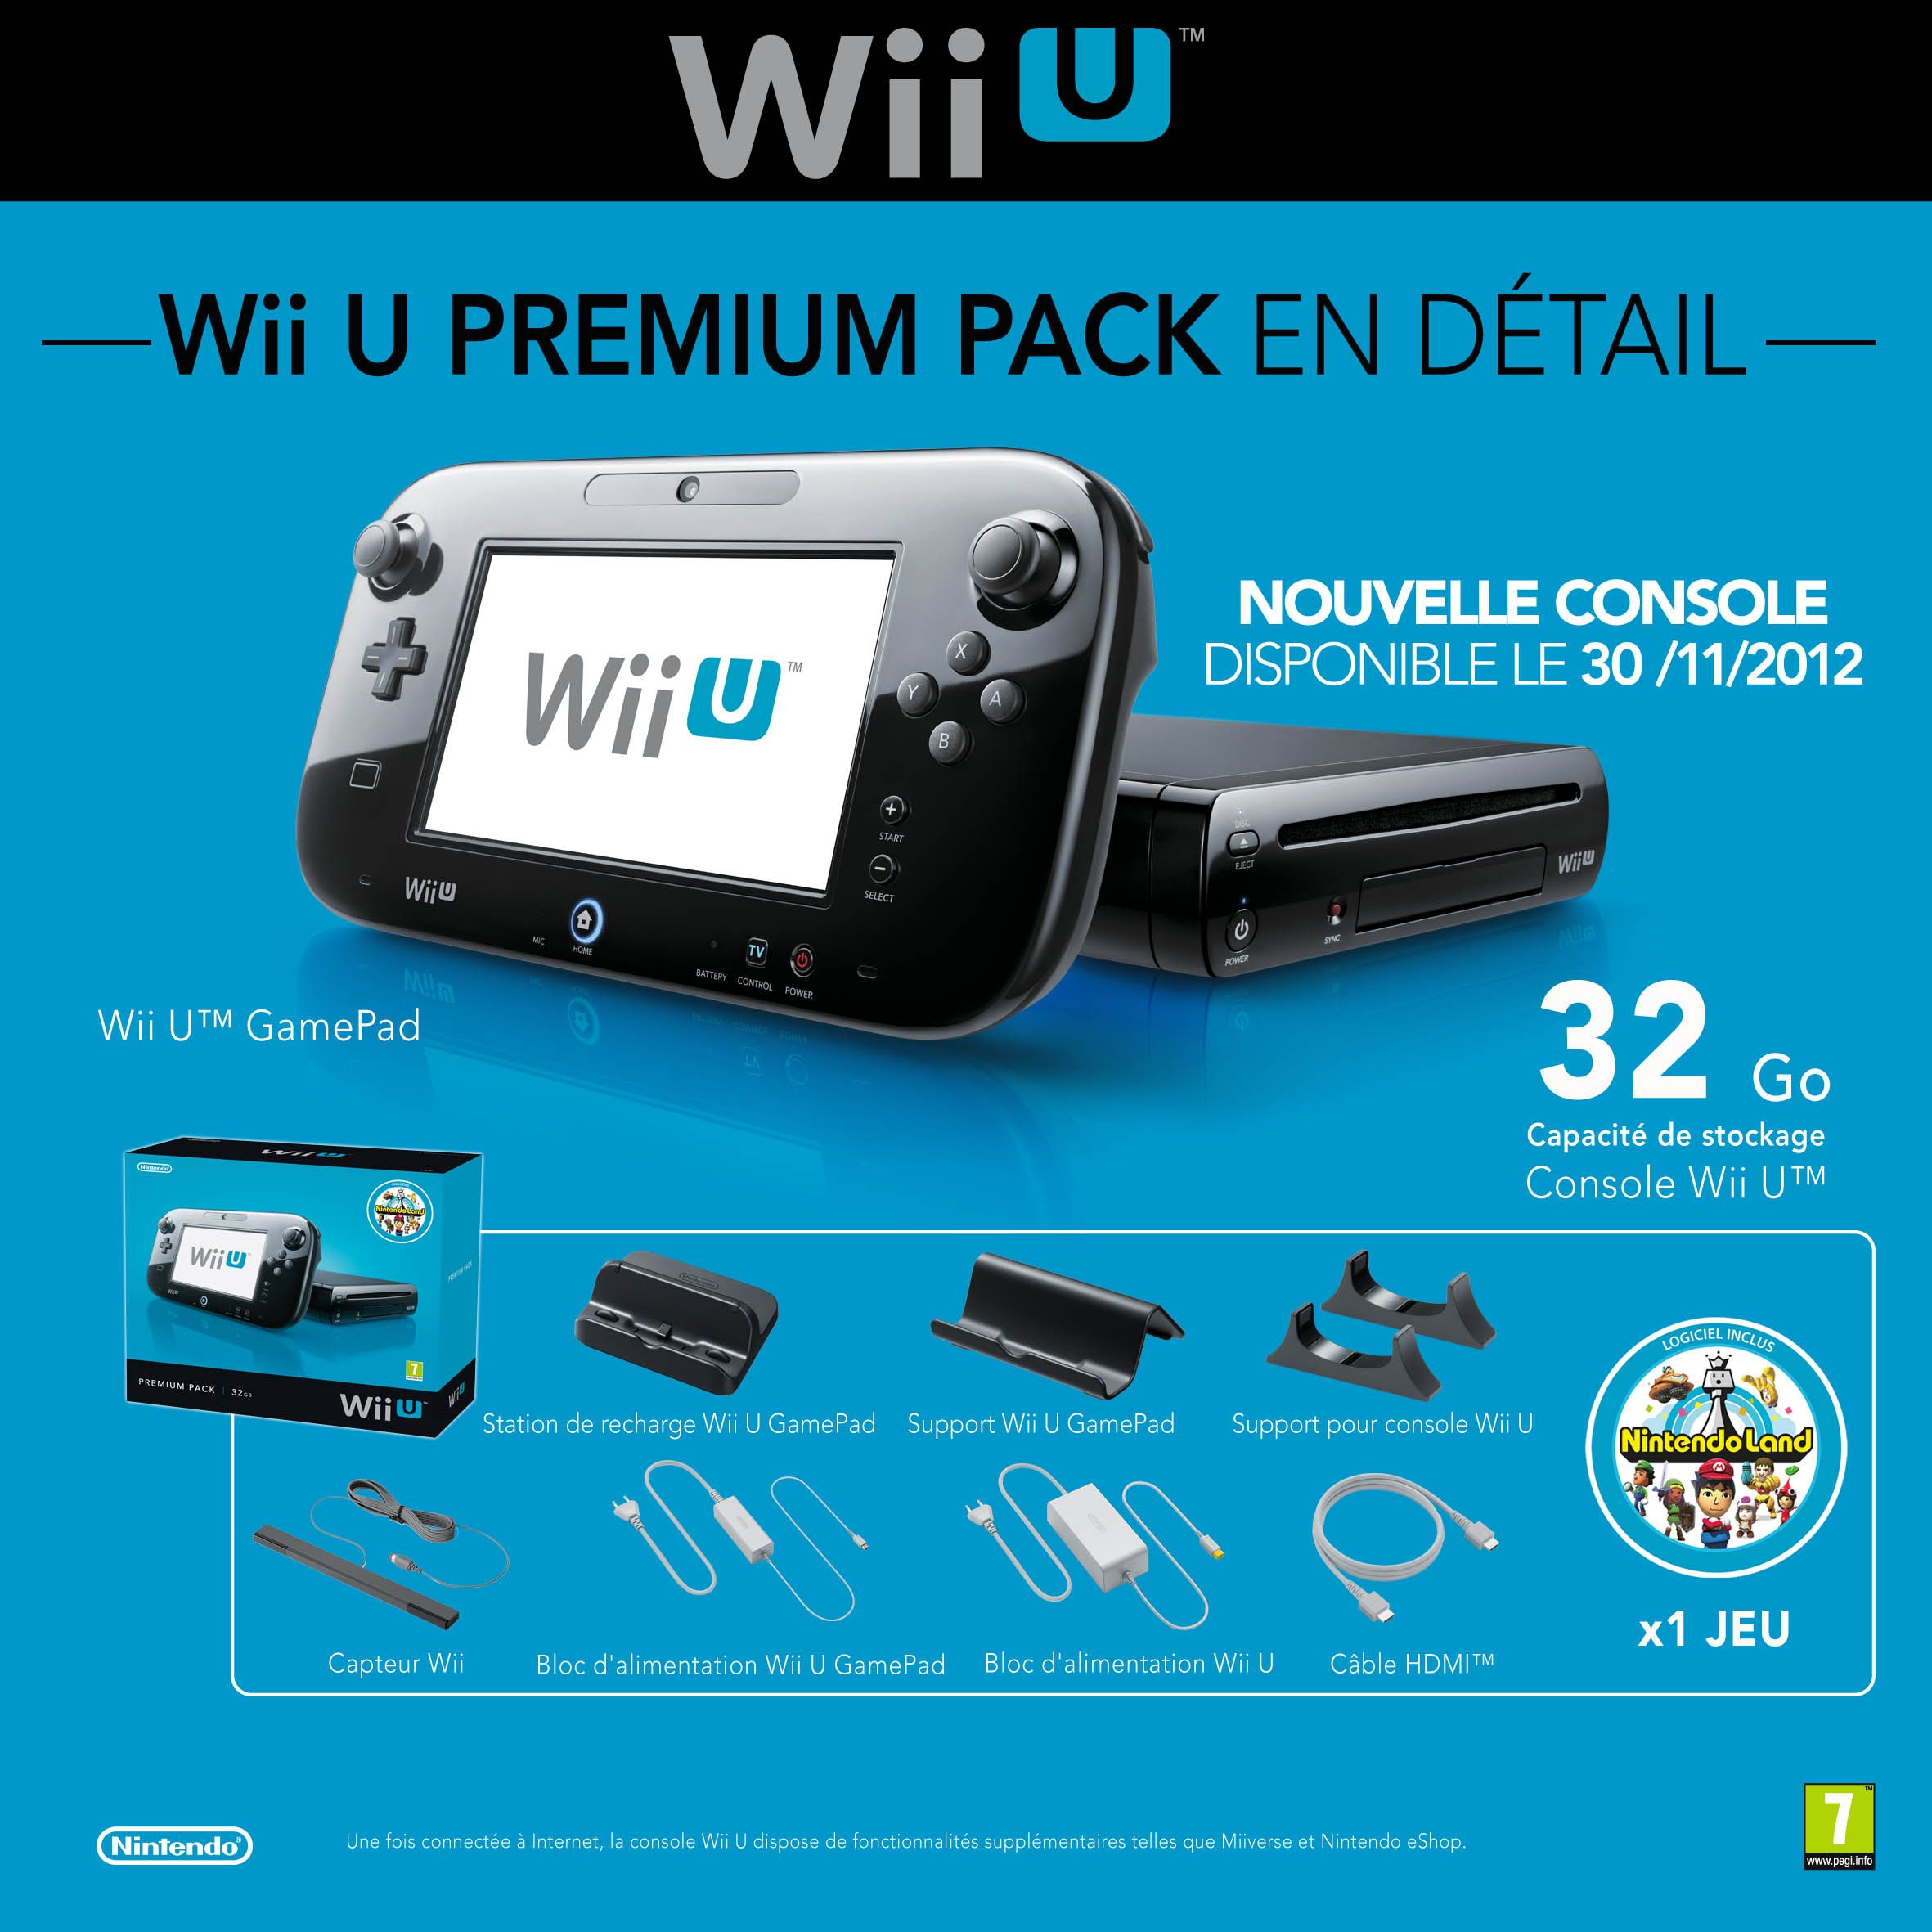 976404f44cb Wii U Premium pack | Tech/gaming/electronics